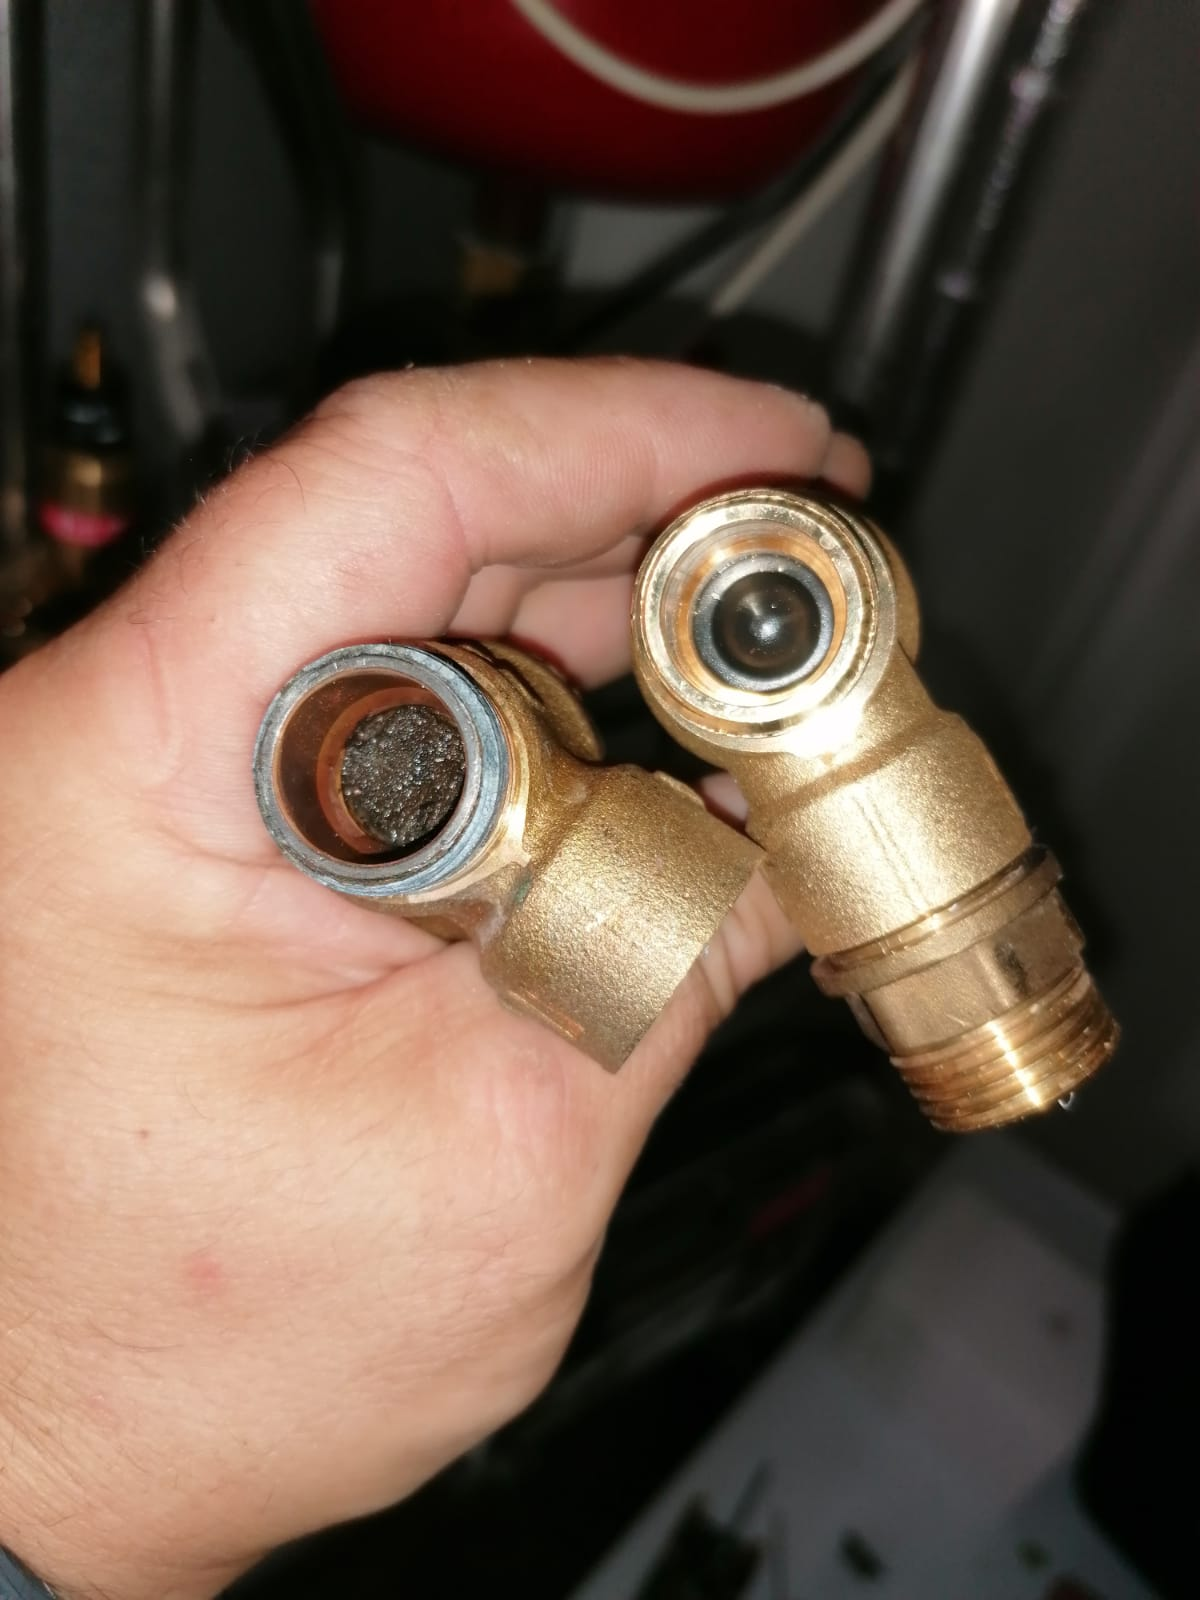 The valve on the left hand side is fully blocked by dirt. And caused overpressure in the system and the pressure relief valve started leaking.